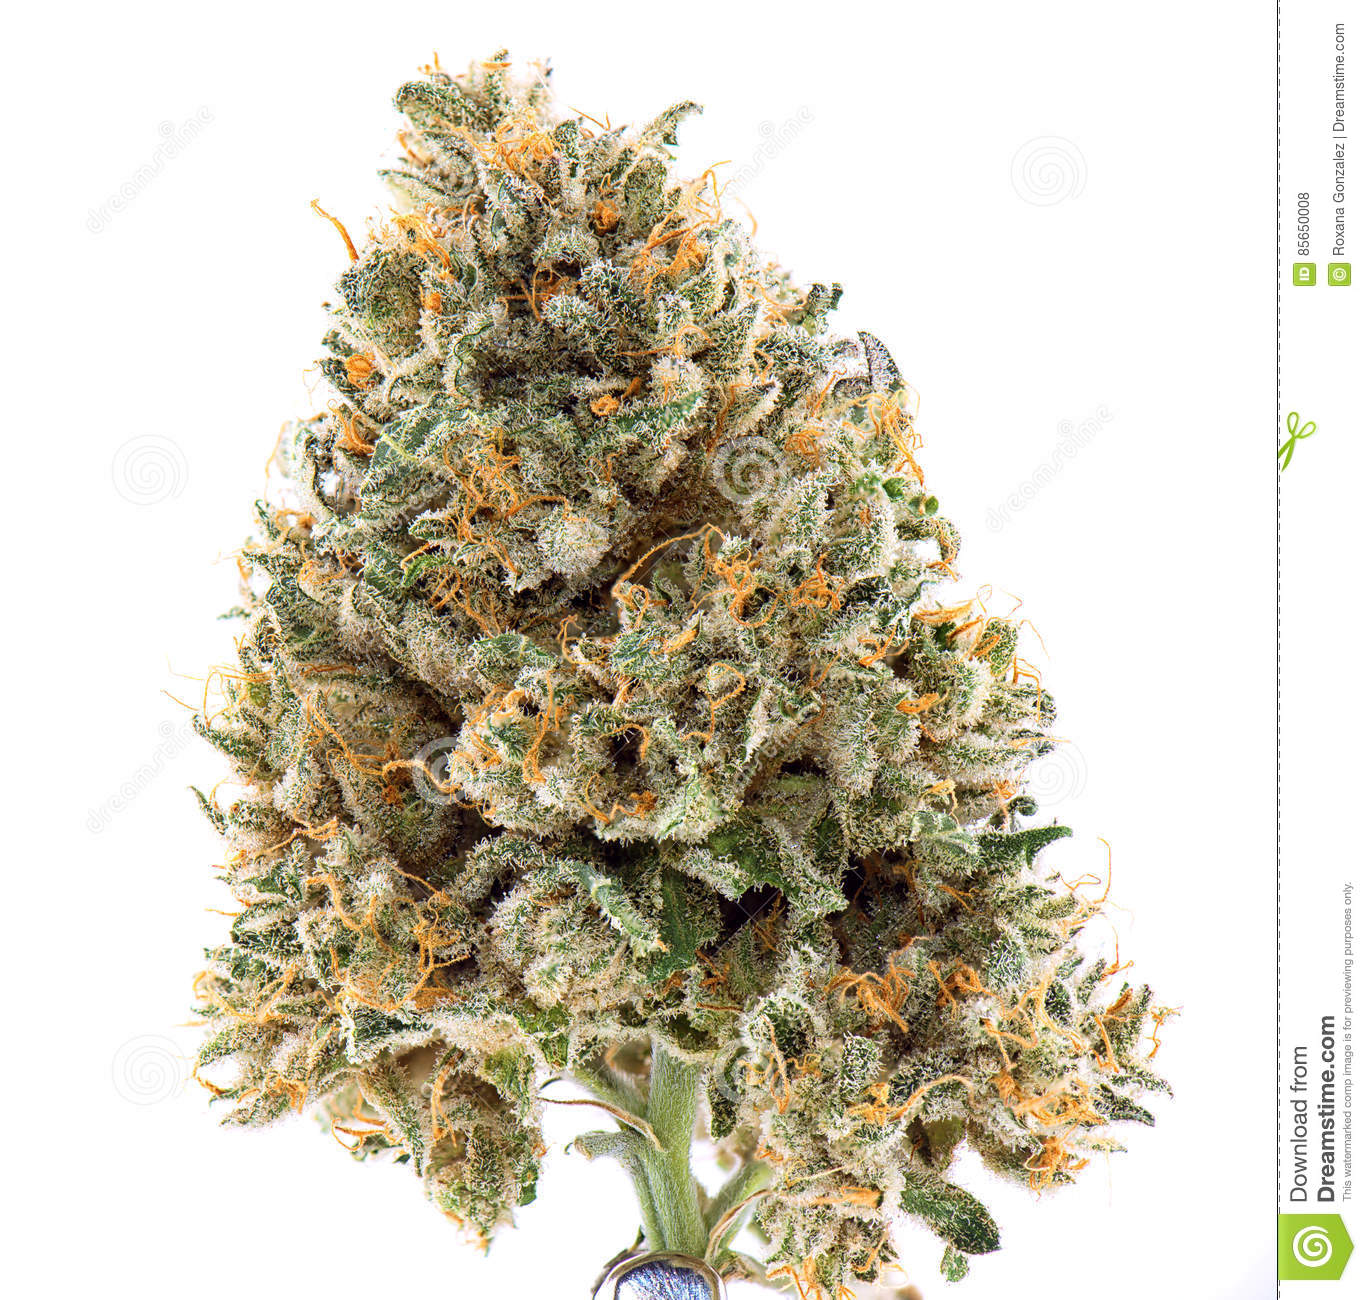 Dried cannabis flower mangolope strain isolated over white